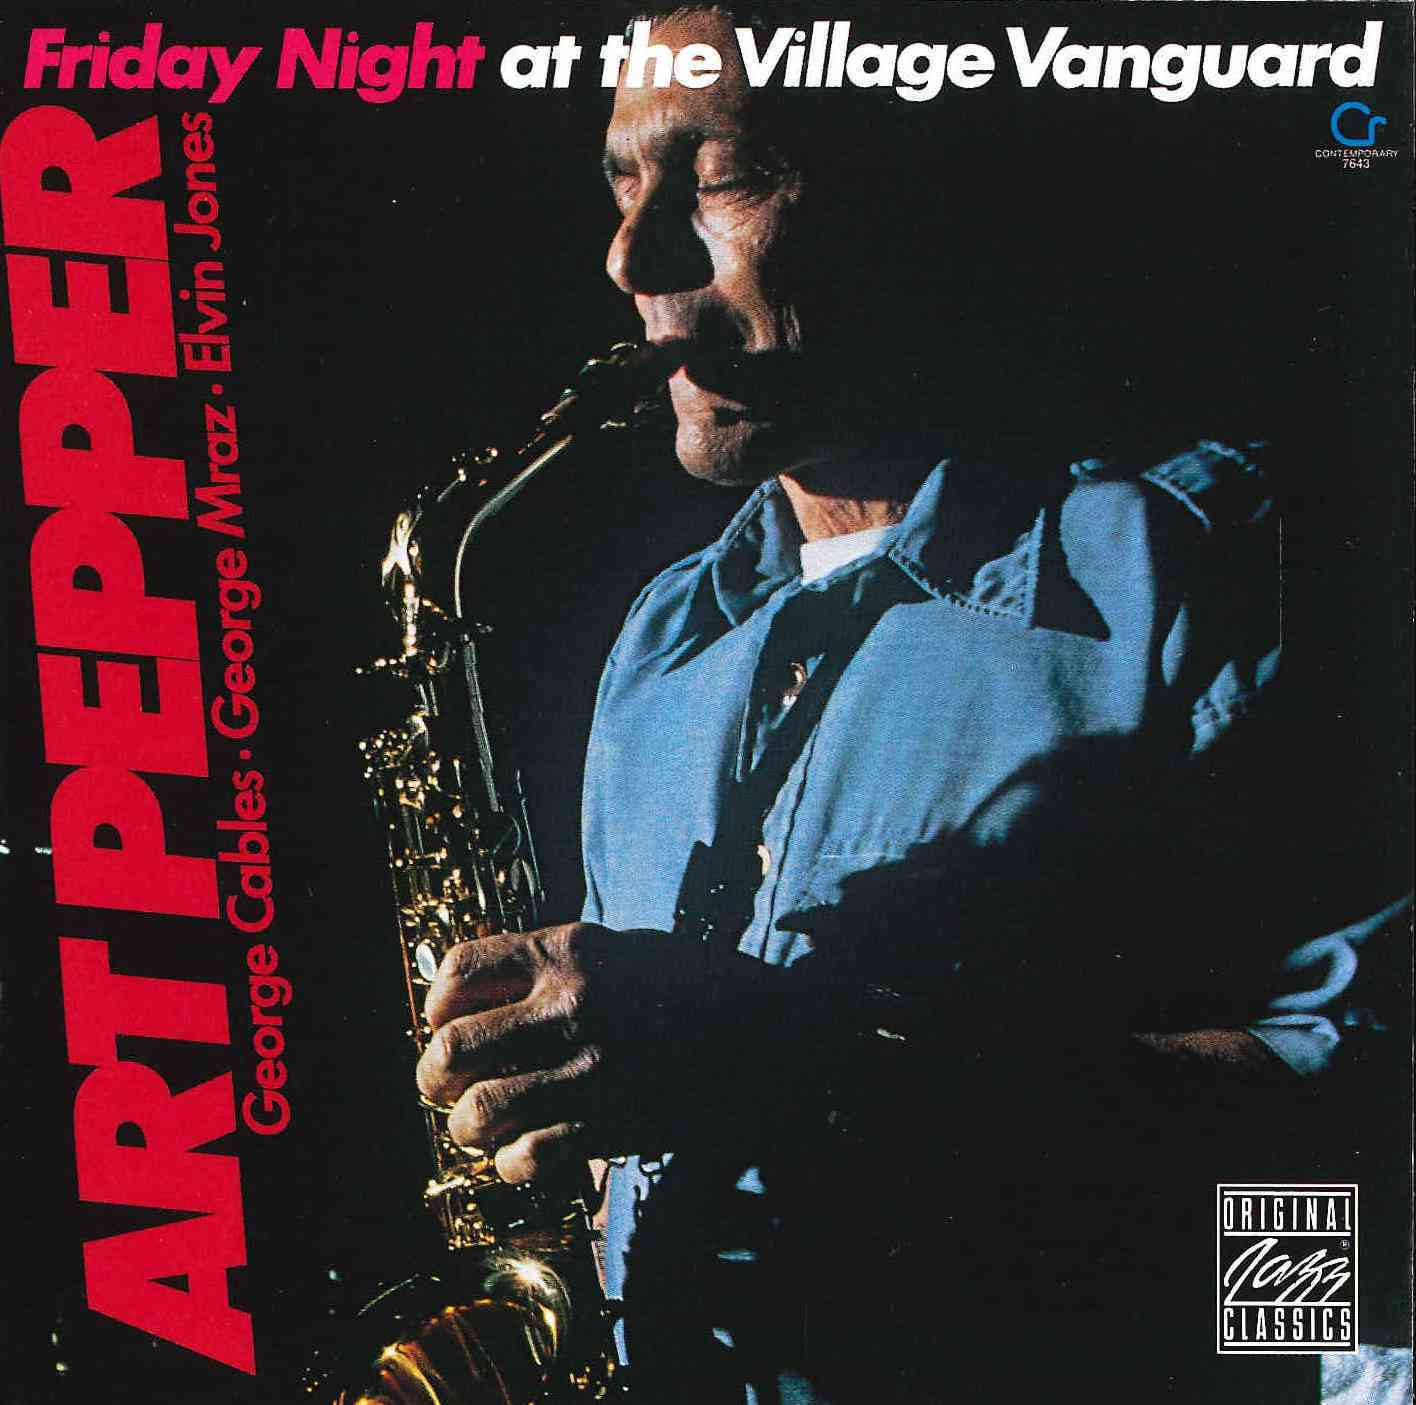 Art Pepper - Friday Night at Village Vanguard